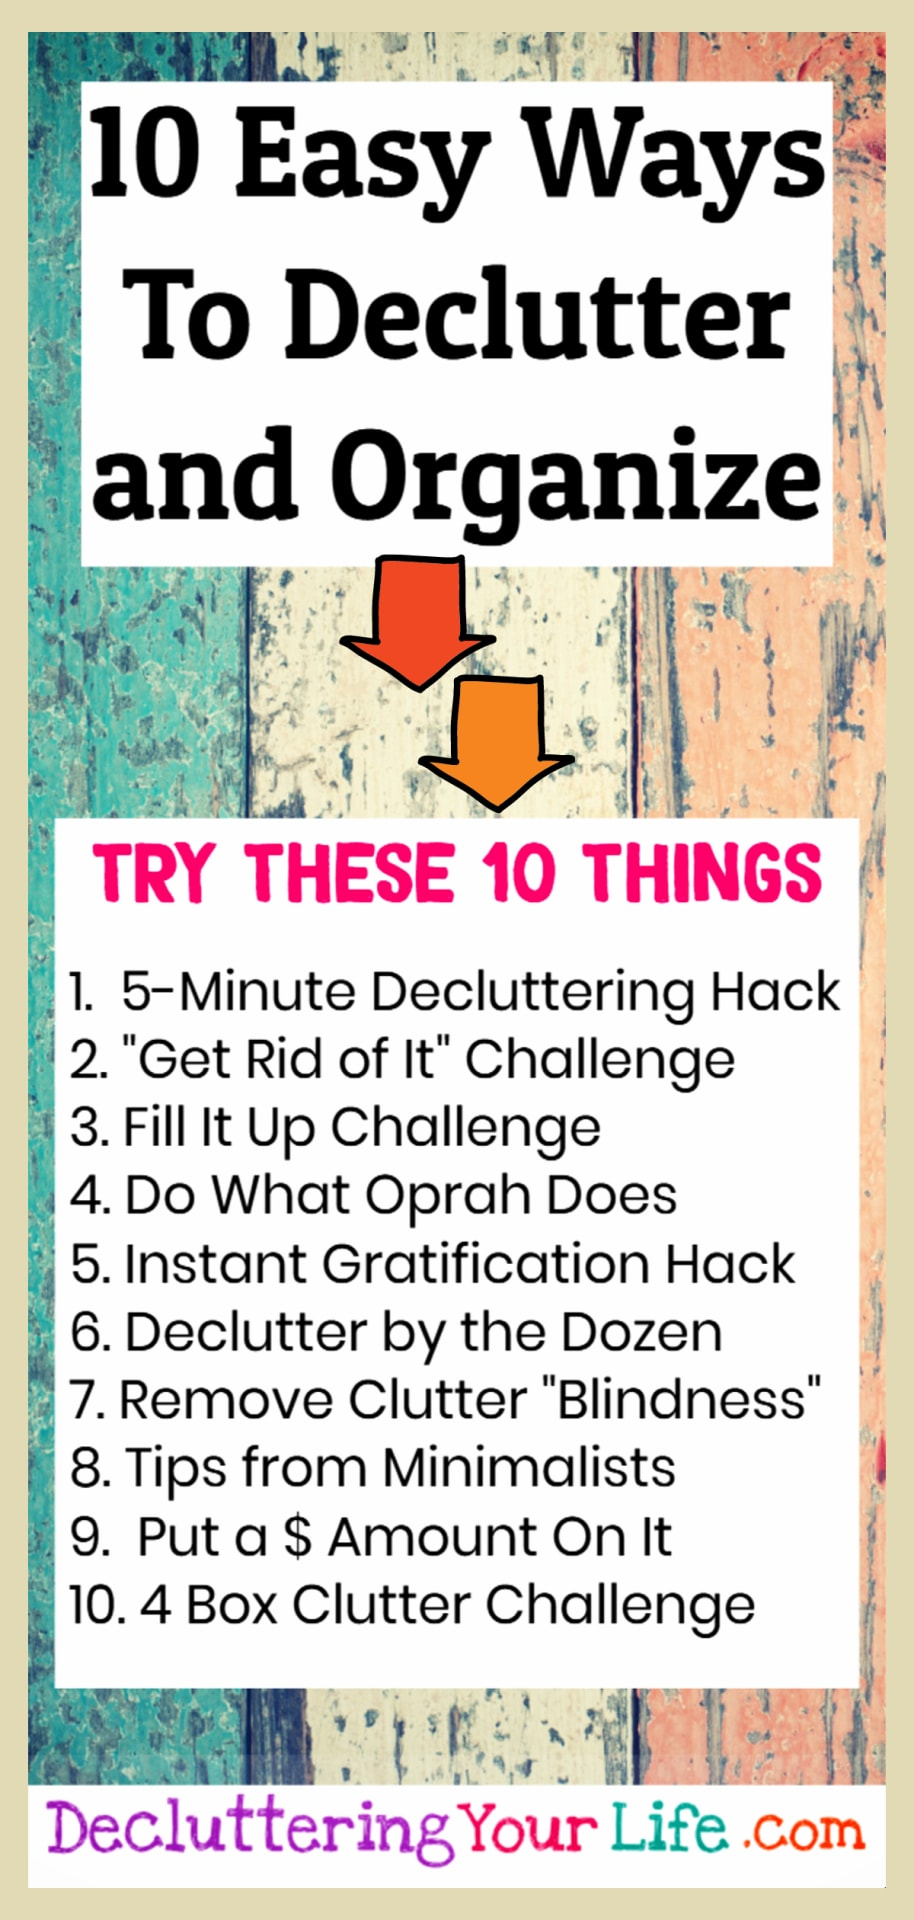 Organizing Ideas For The Home - Decluttering Ideas if you're feeling overwhelmed - where to start decluttering and organizing your messy house - decluttering step by step to declutter and organize without feeling overwhelmed